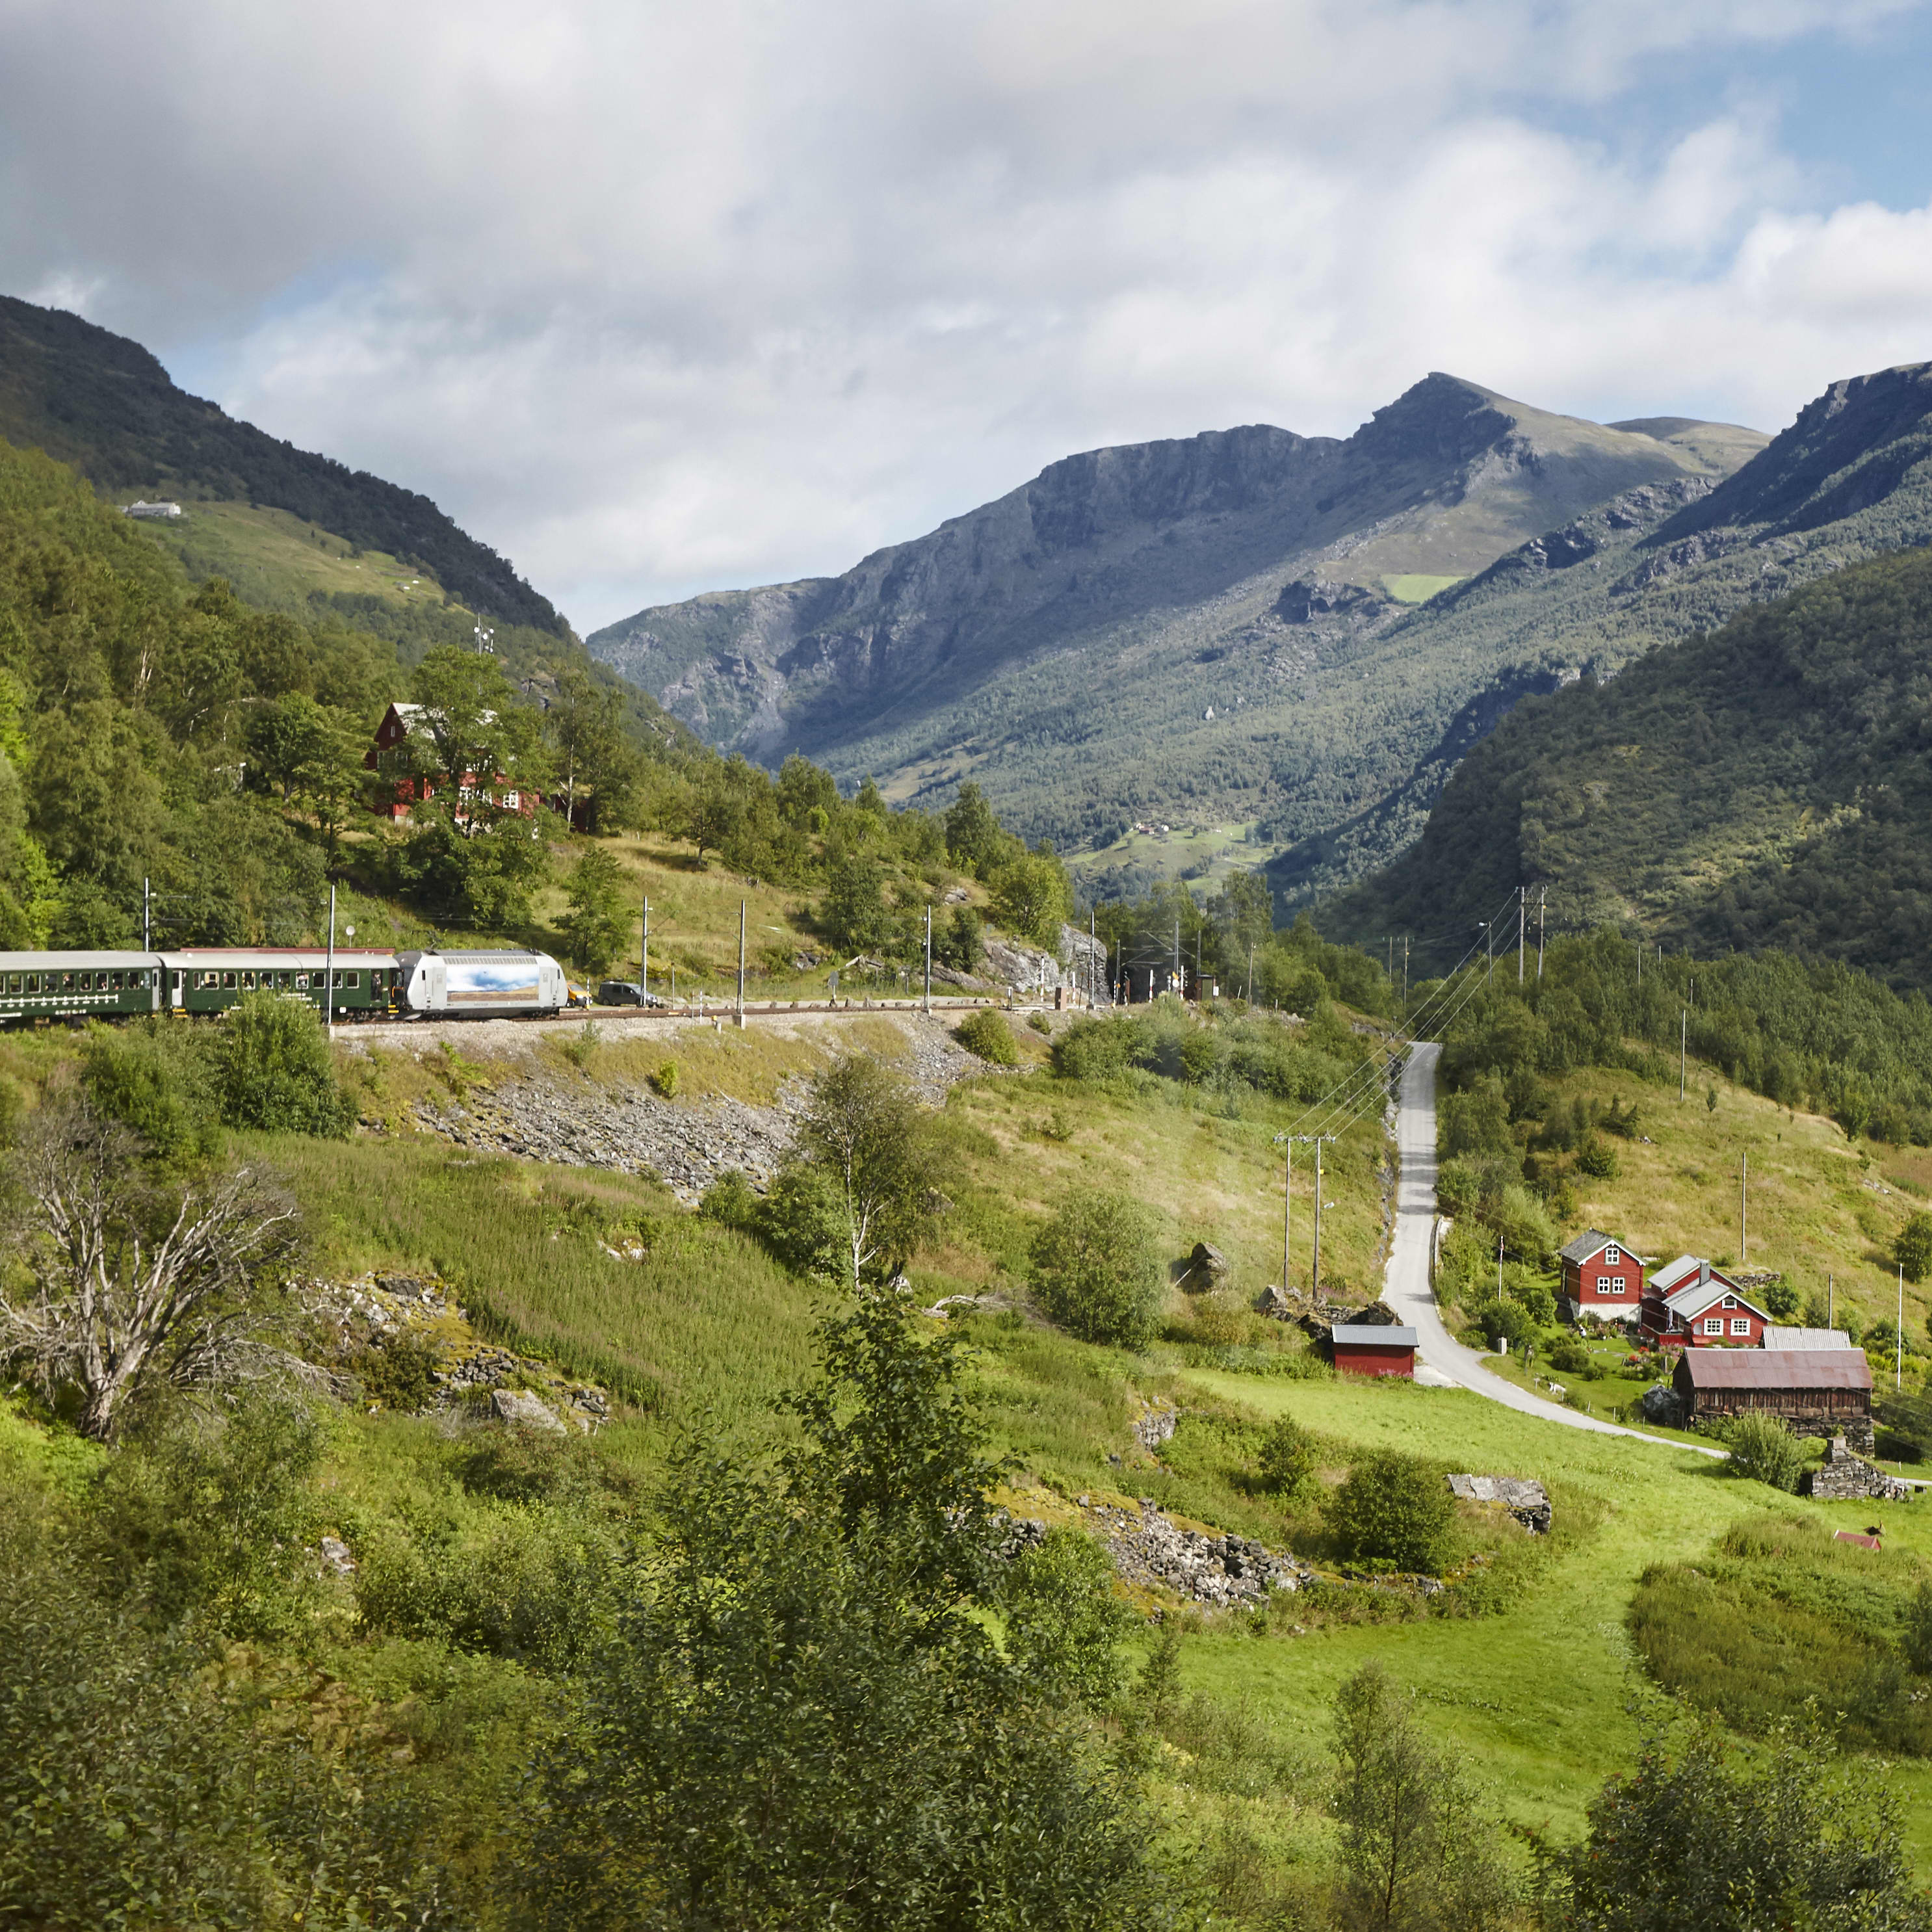 The train between Myrdal and Flaam is passing by green landscape with tall mountains and a small village with colorful red houses.